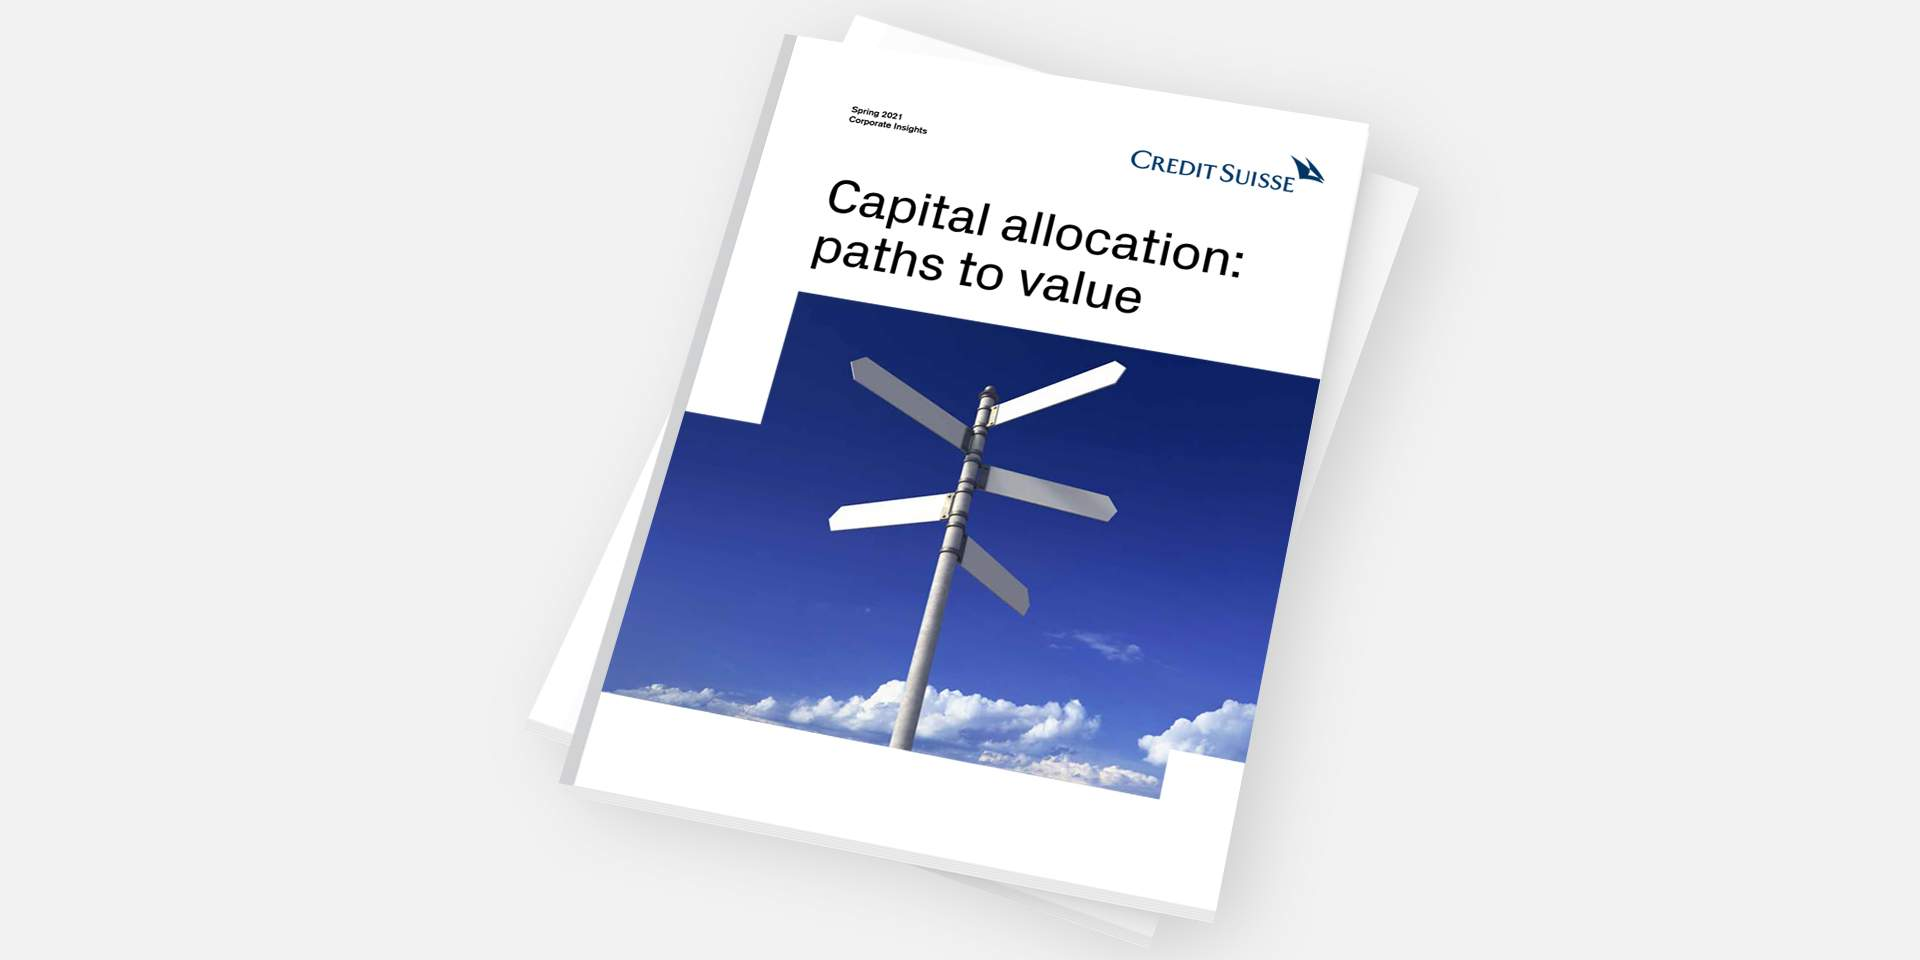 Capital allocation: paths to value